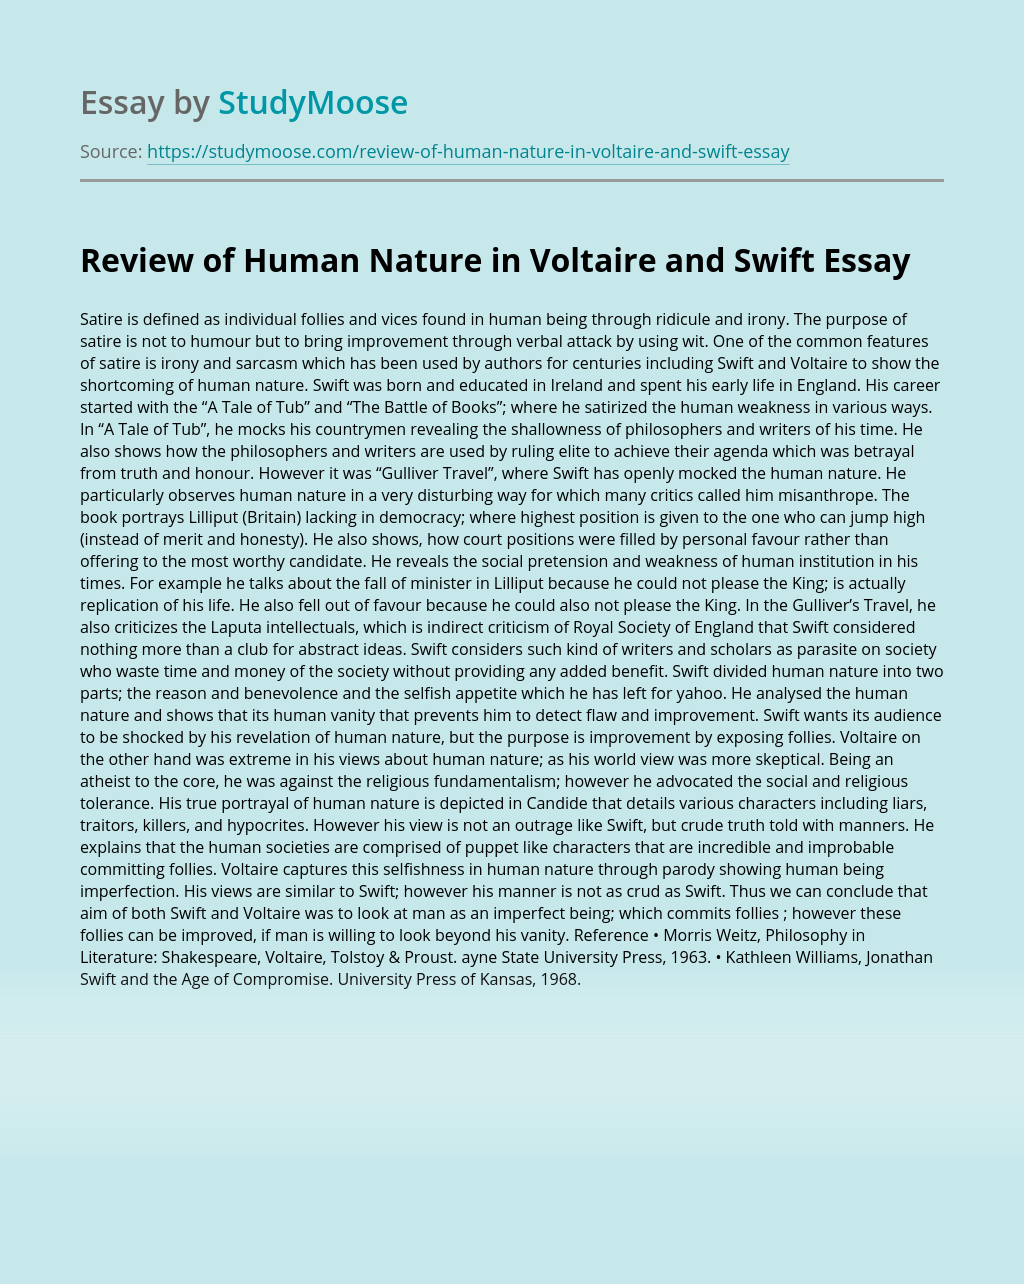 Review of Human Nature in Voltaire and Swift